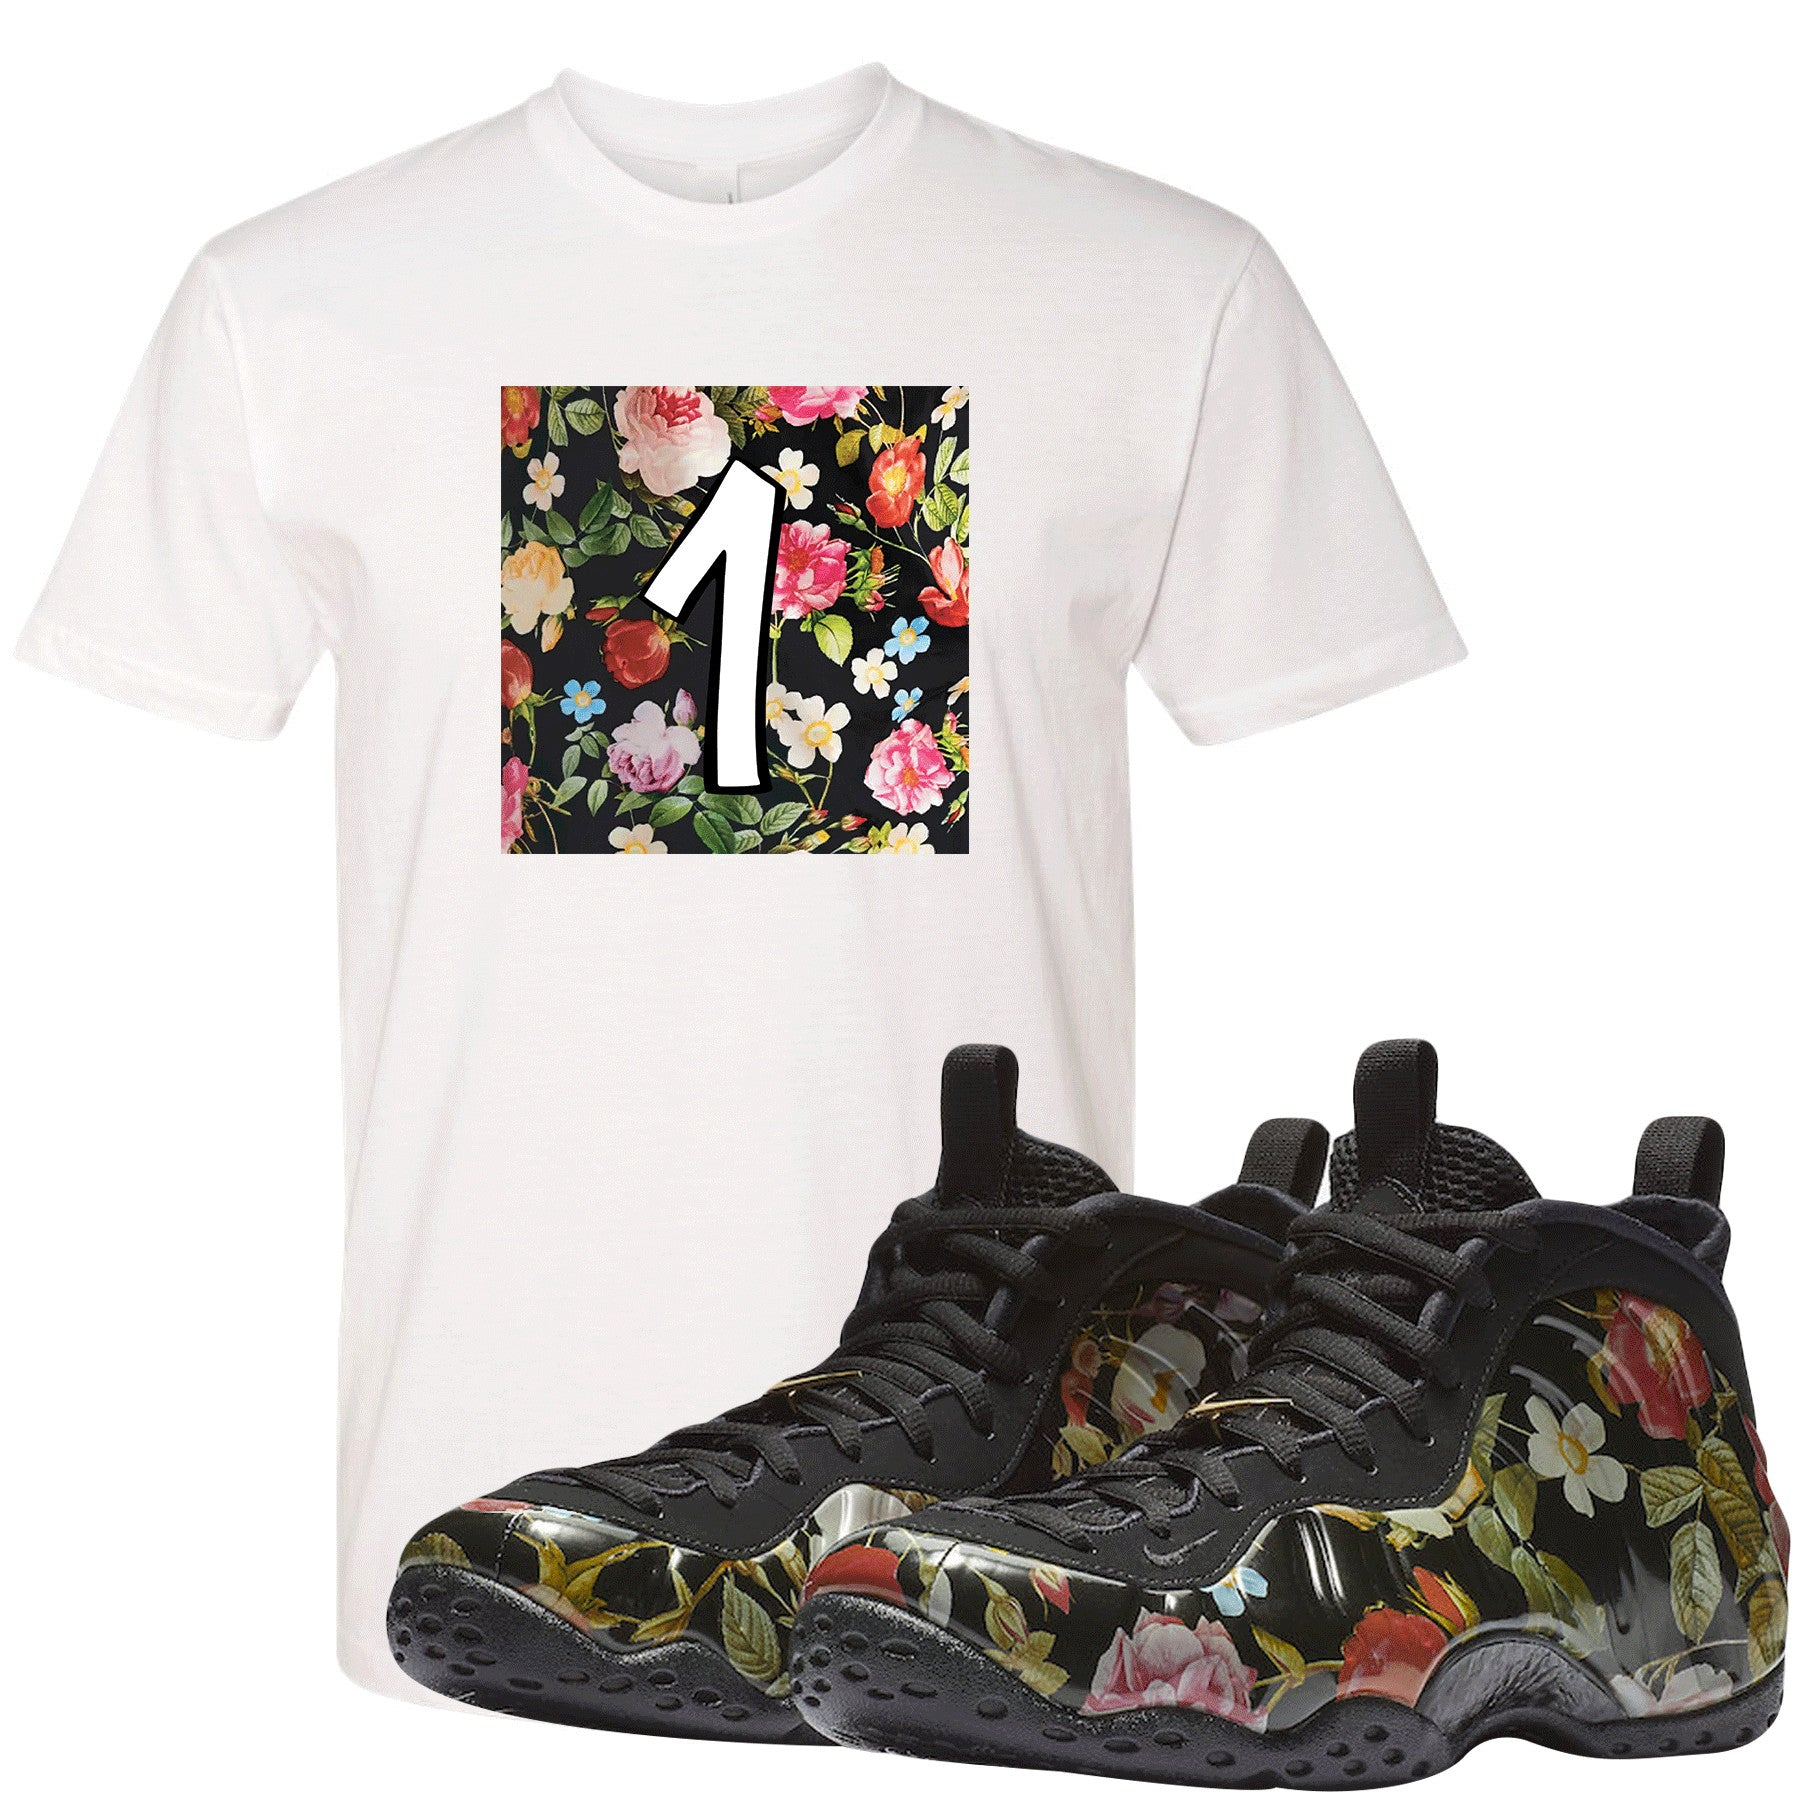 reputable site 3972c 0cbbb Wear this sneaker matching t-shirt to match your Air Foamposite One Floral  sneakers.